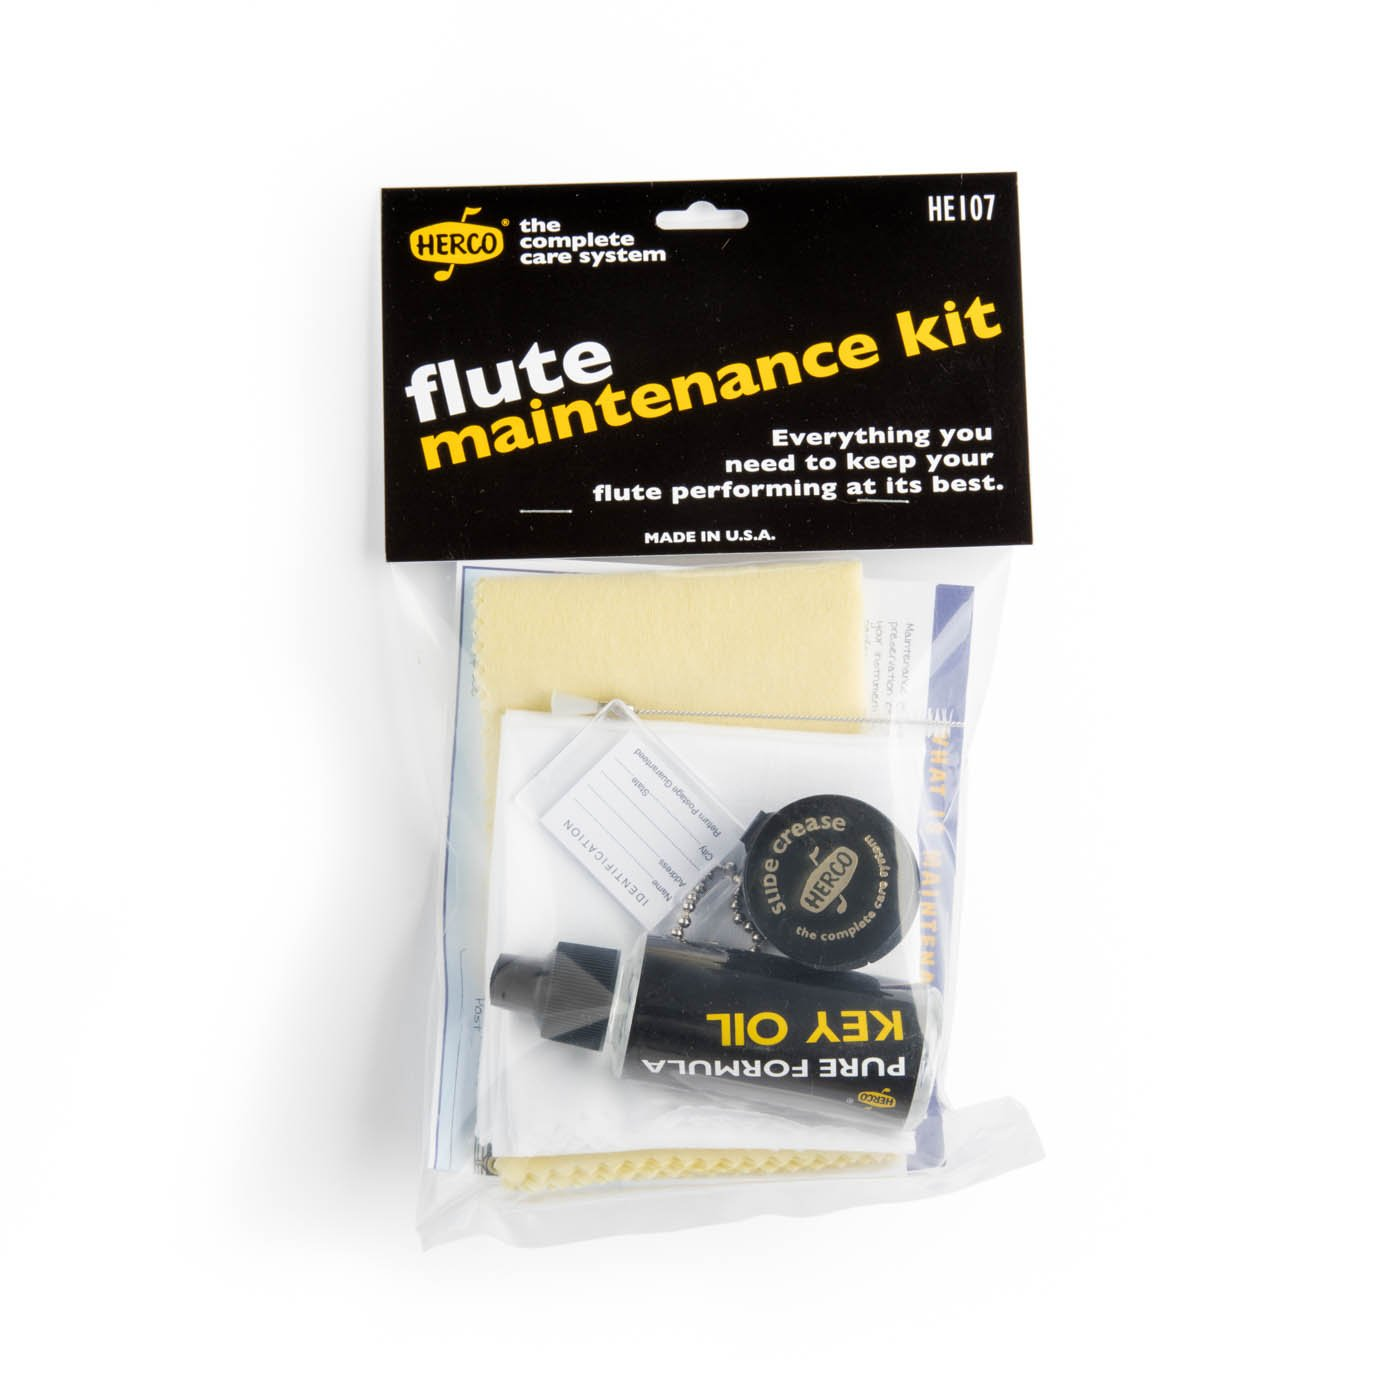 Herco Complete Care Flute Maintenance Kit